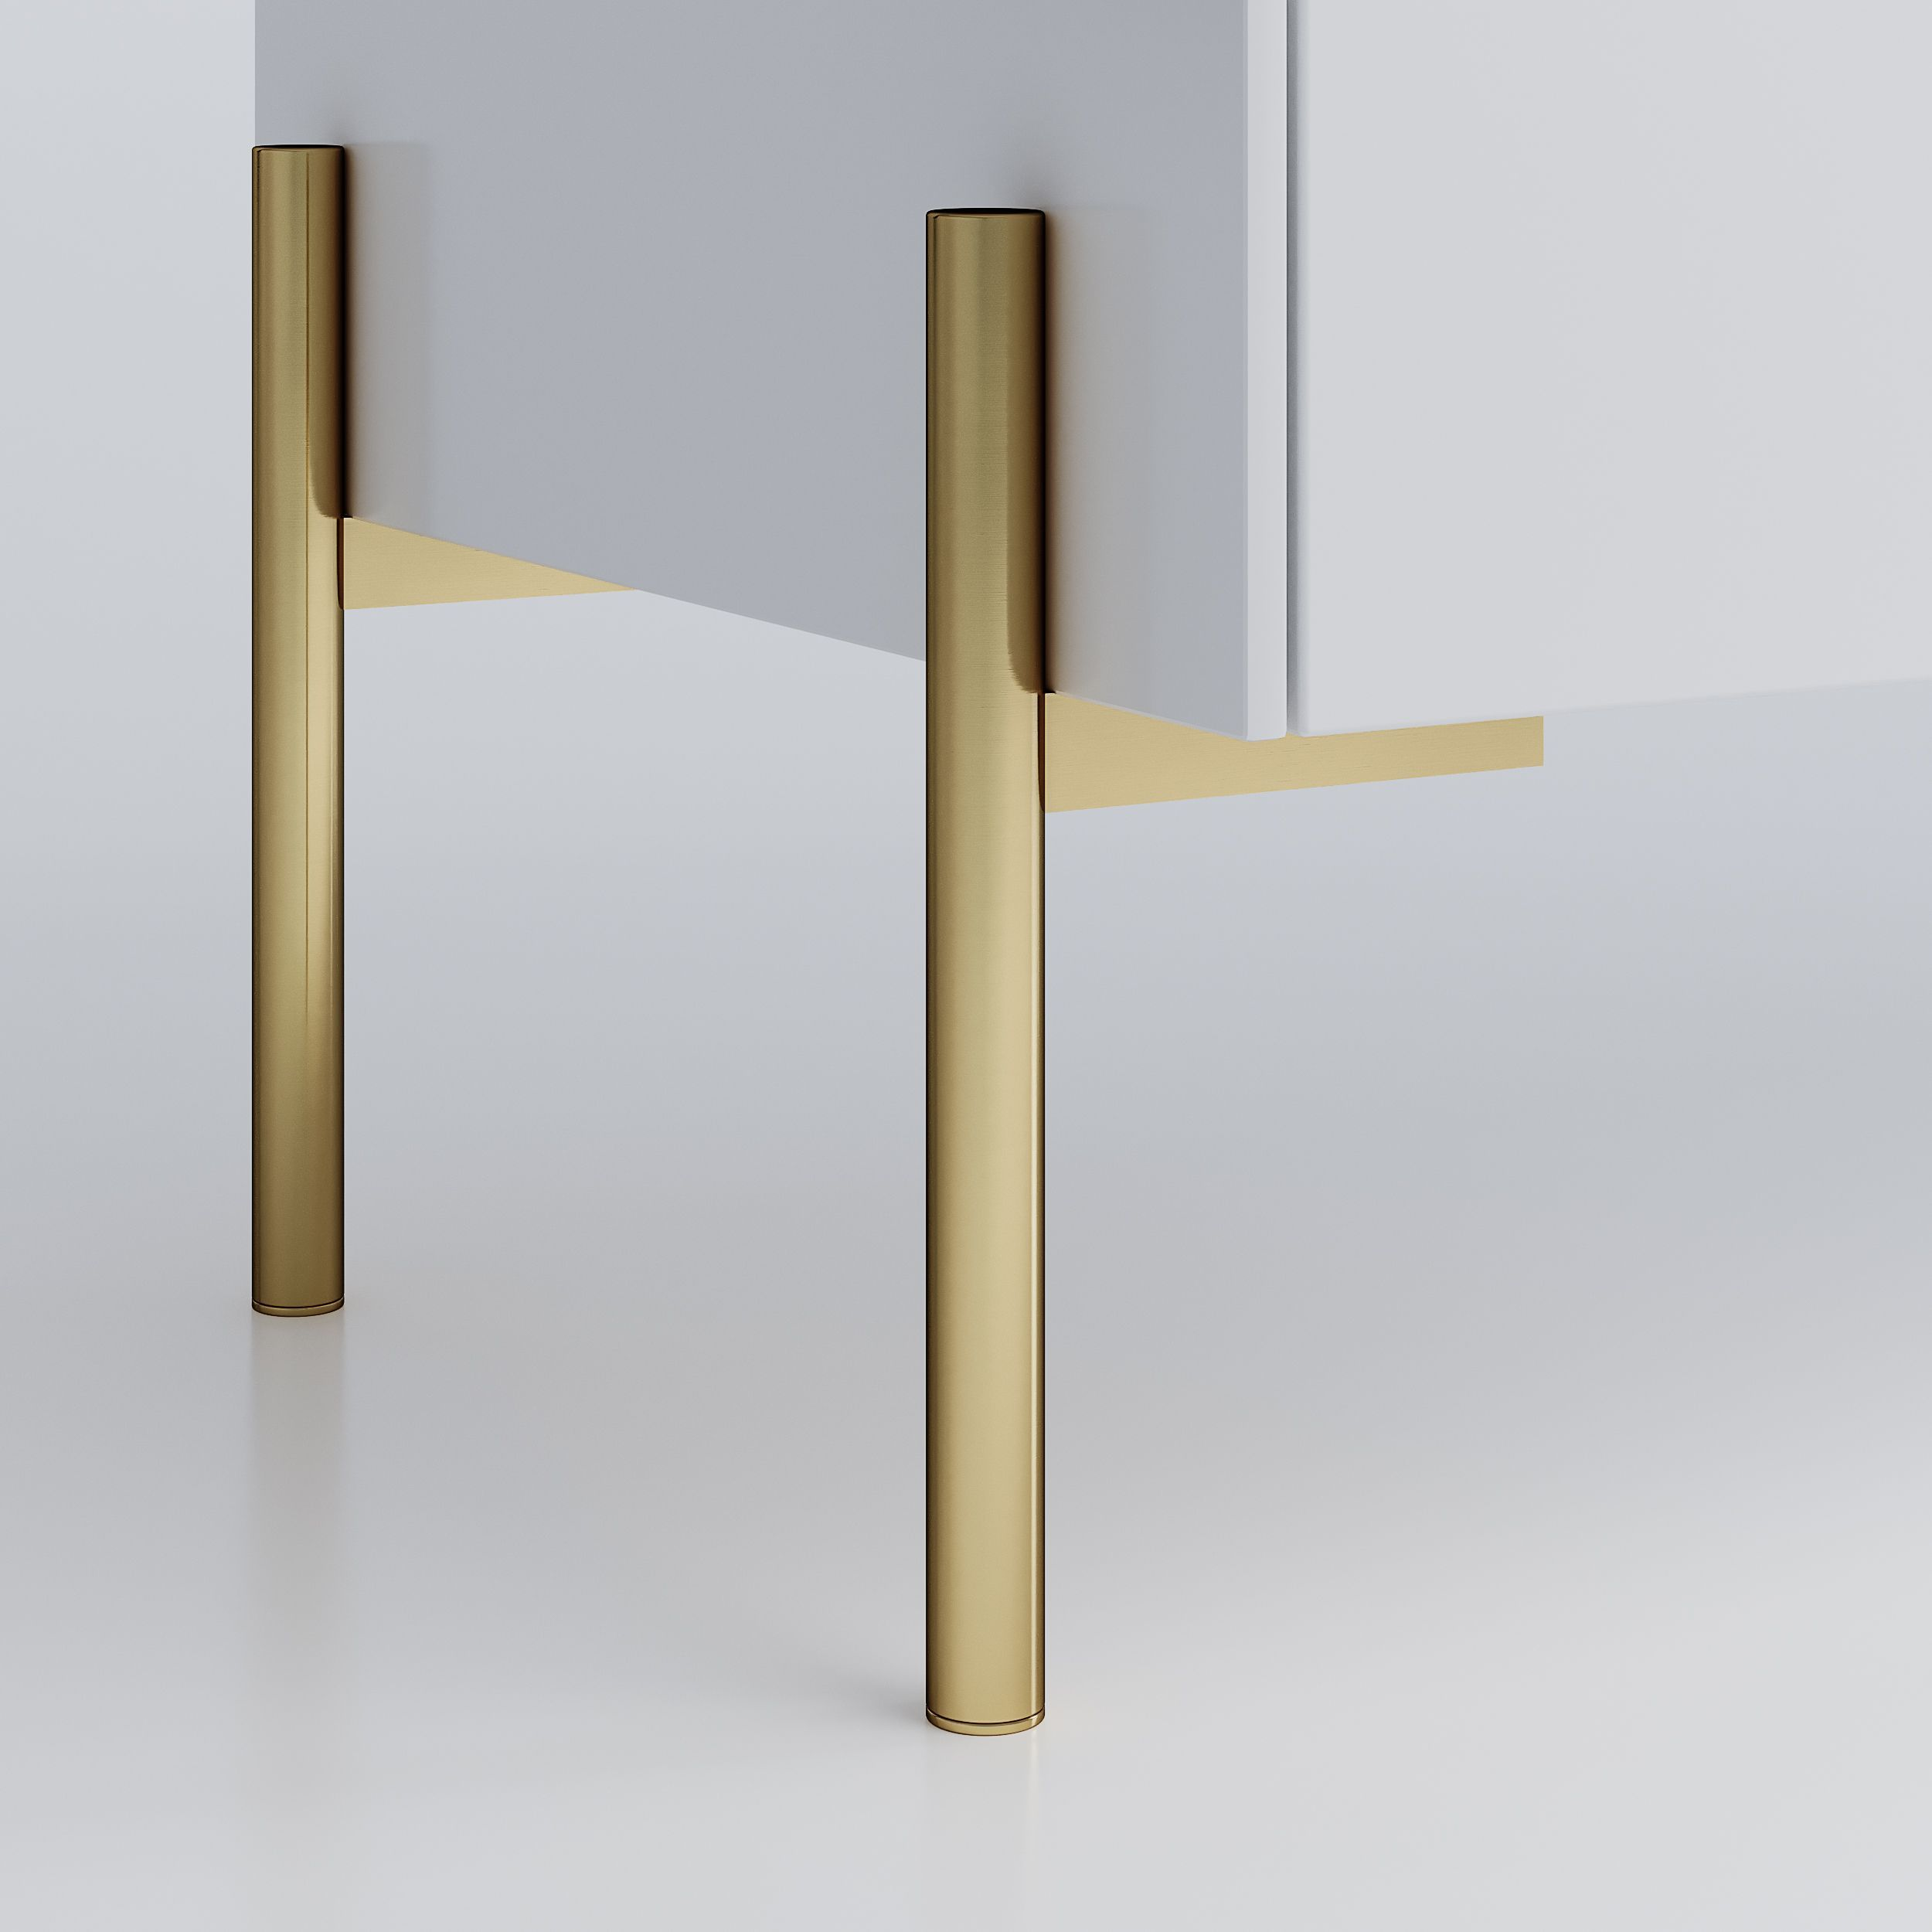 The Sara Is A Handmade Elegant Leg In Stainless Steel With Brass